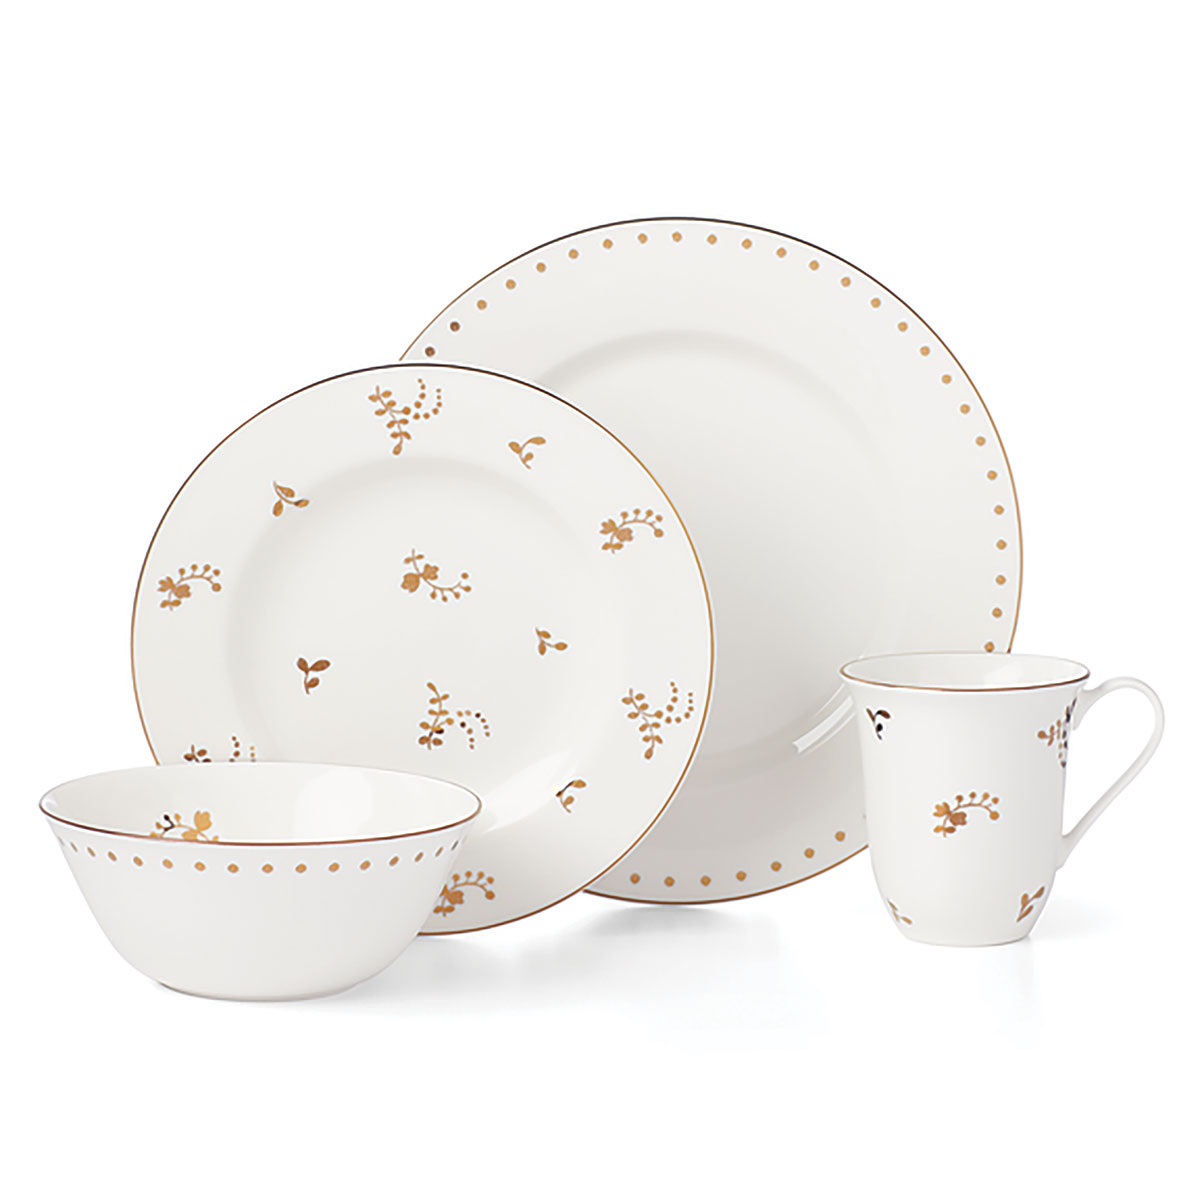 Lenox Opal Innocence Flourish Dinnerware 4 Piece Place Setting